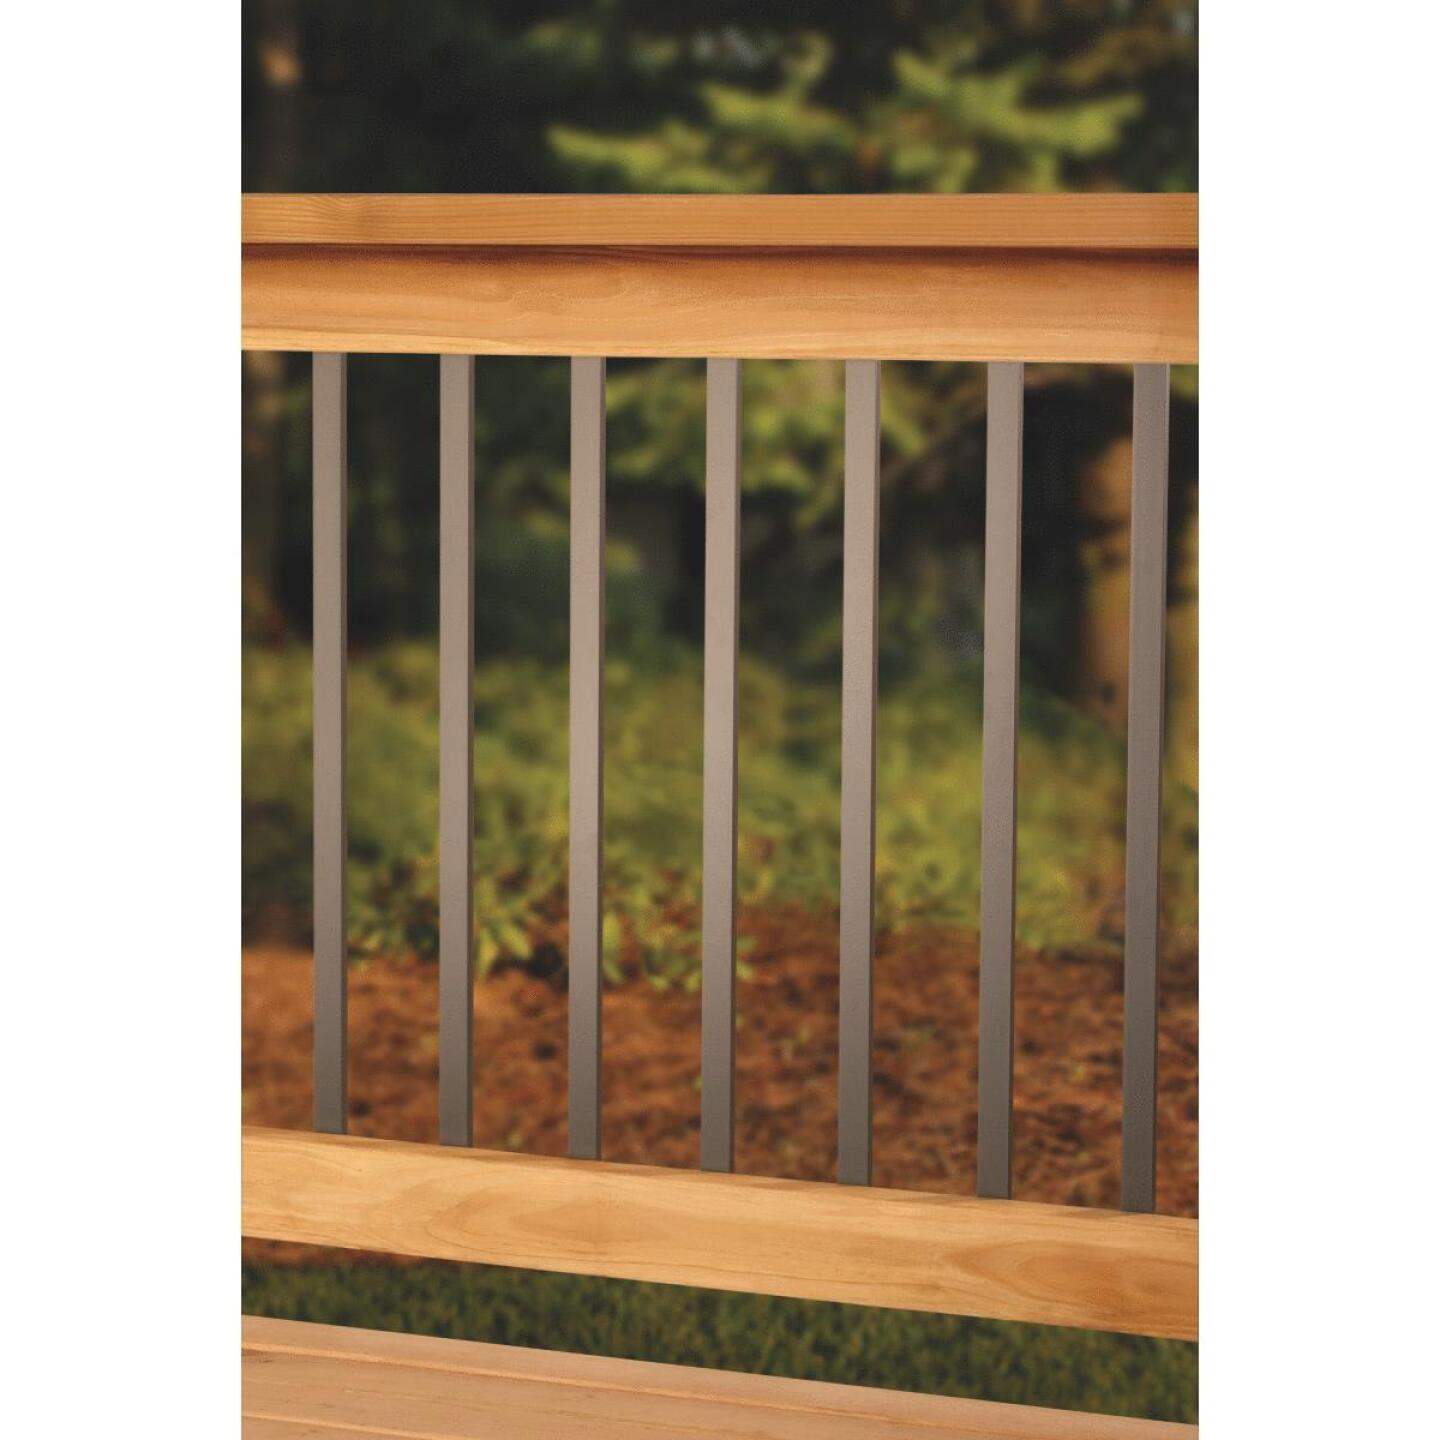 Deckorators 32 In. Bronze Aluminum Traditional Baluster (10-Pack) Image 2